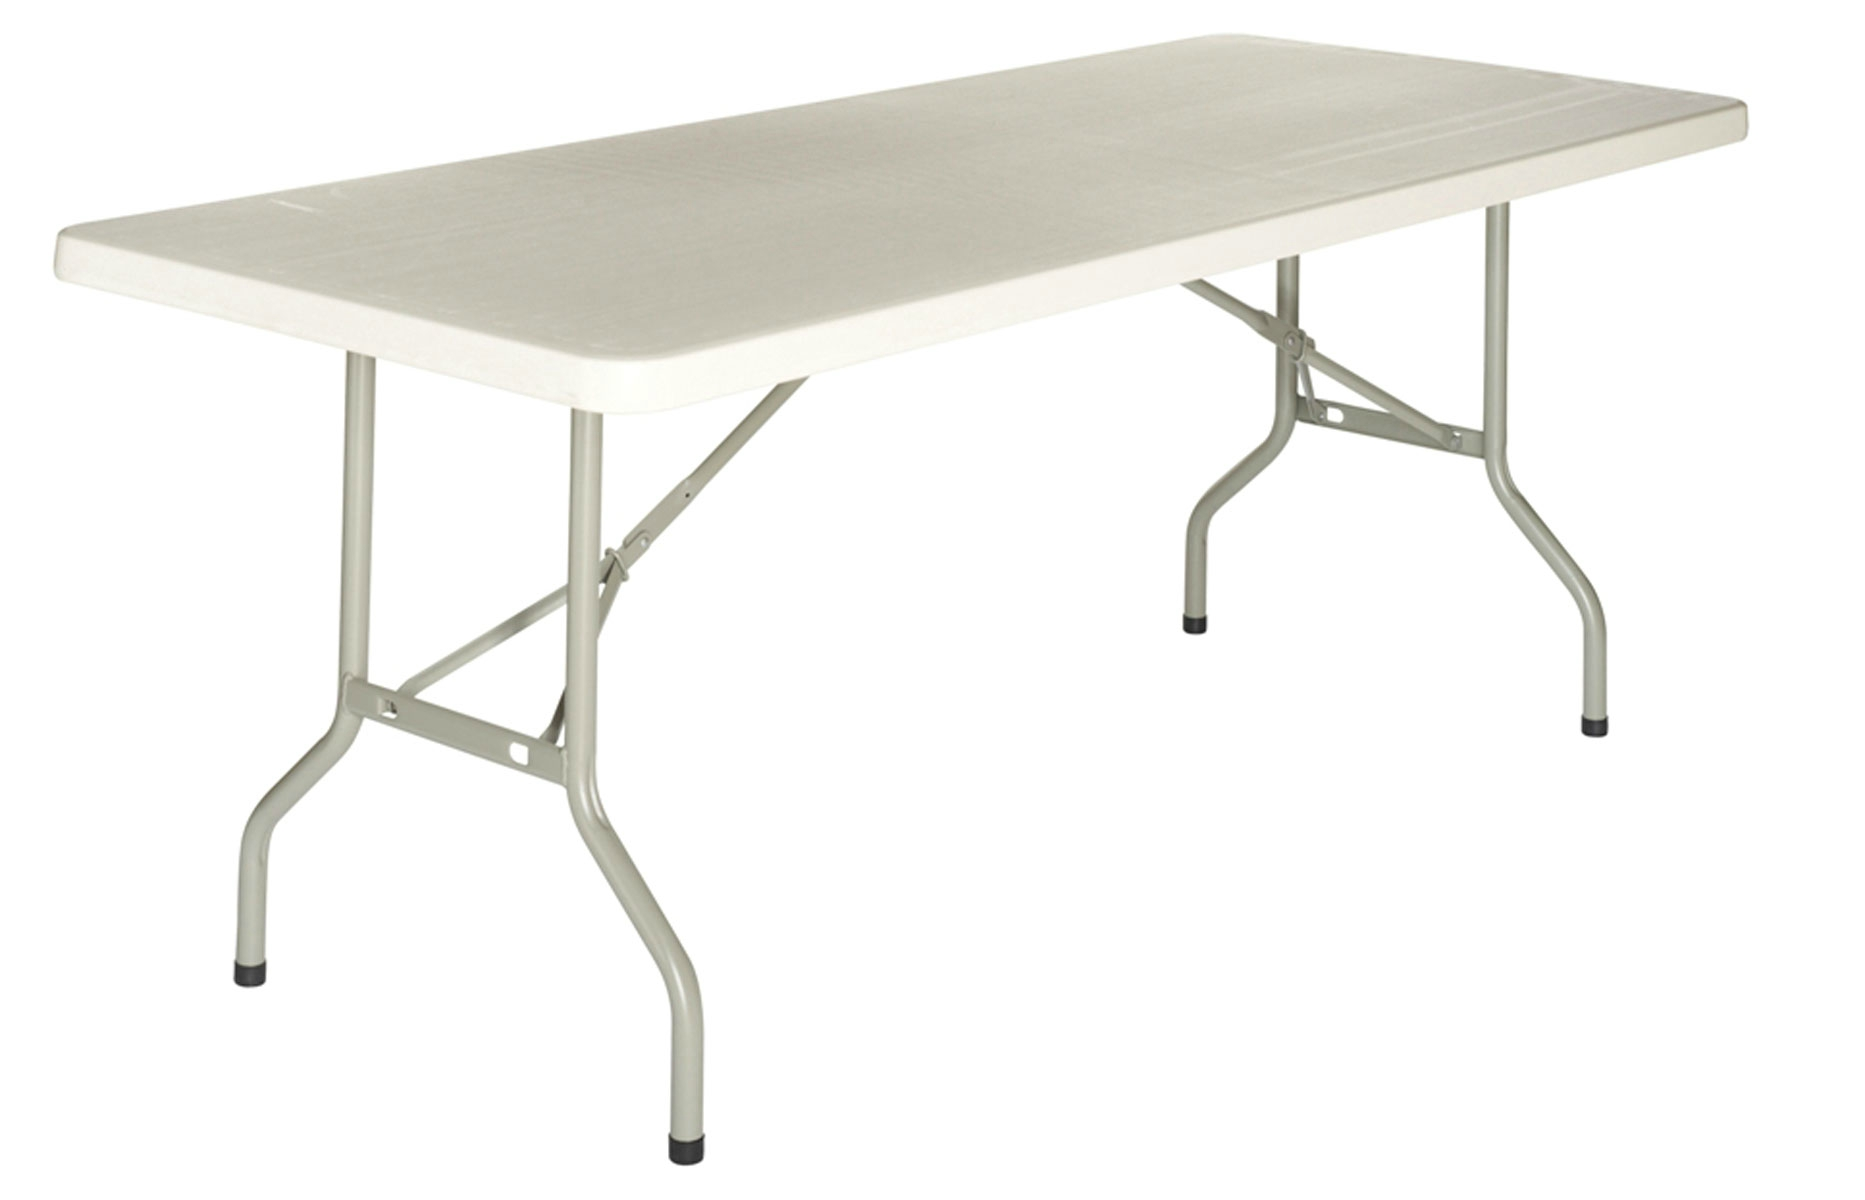 Pied table pliant castorama table de lit - Table jardin pliante ikea roubaix ...